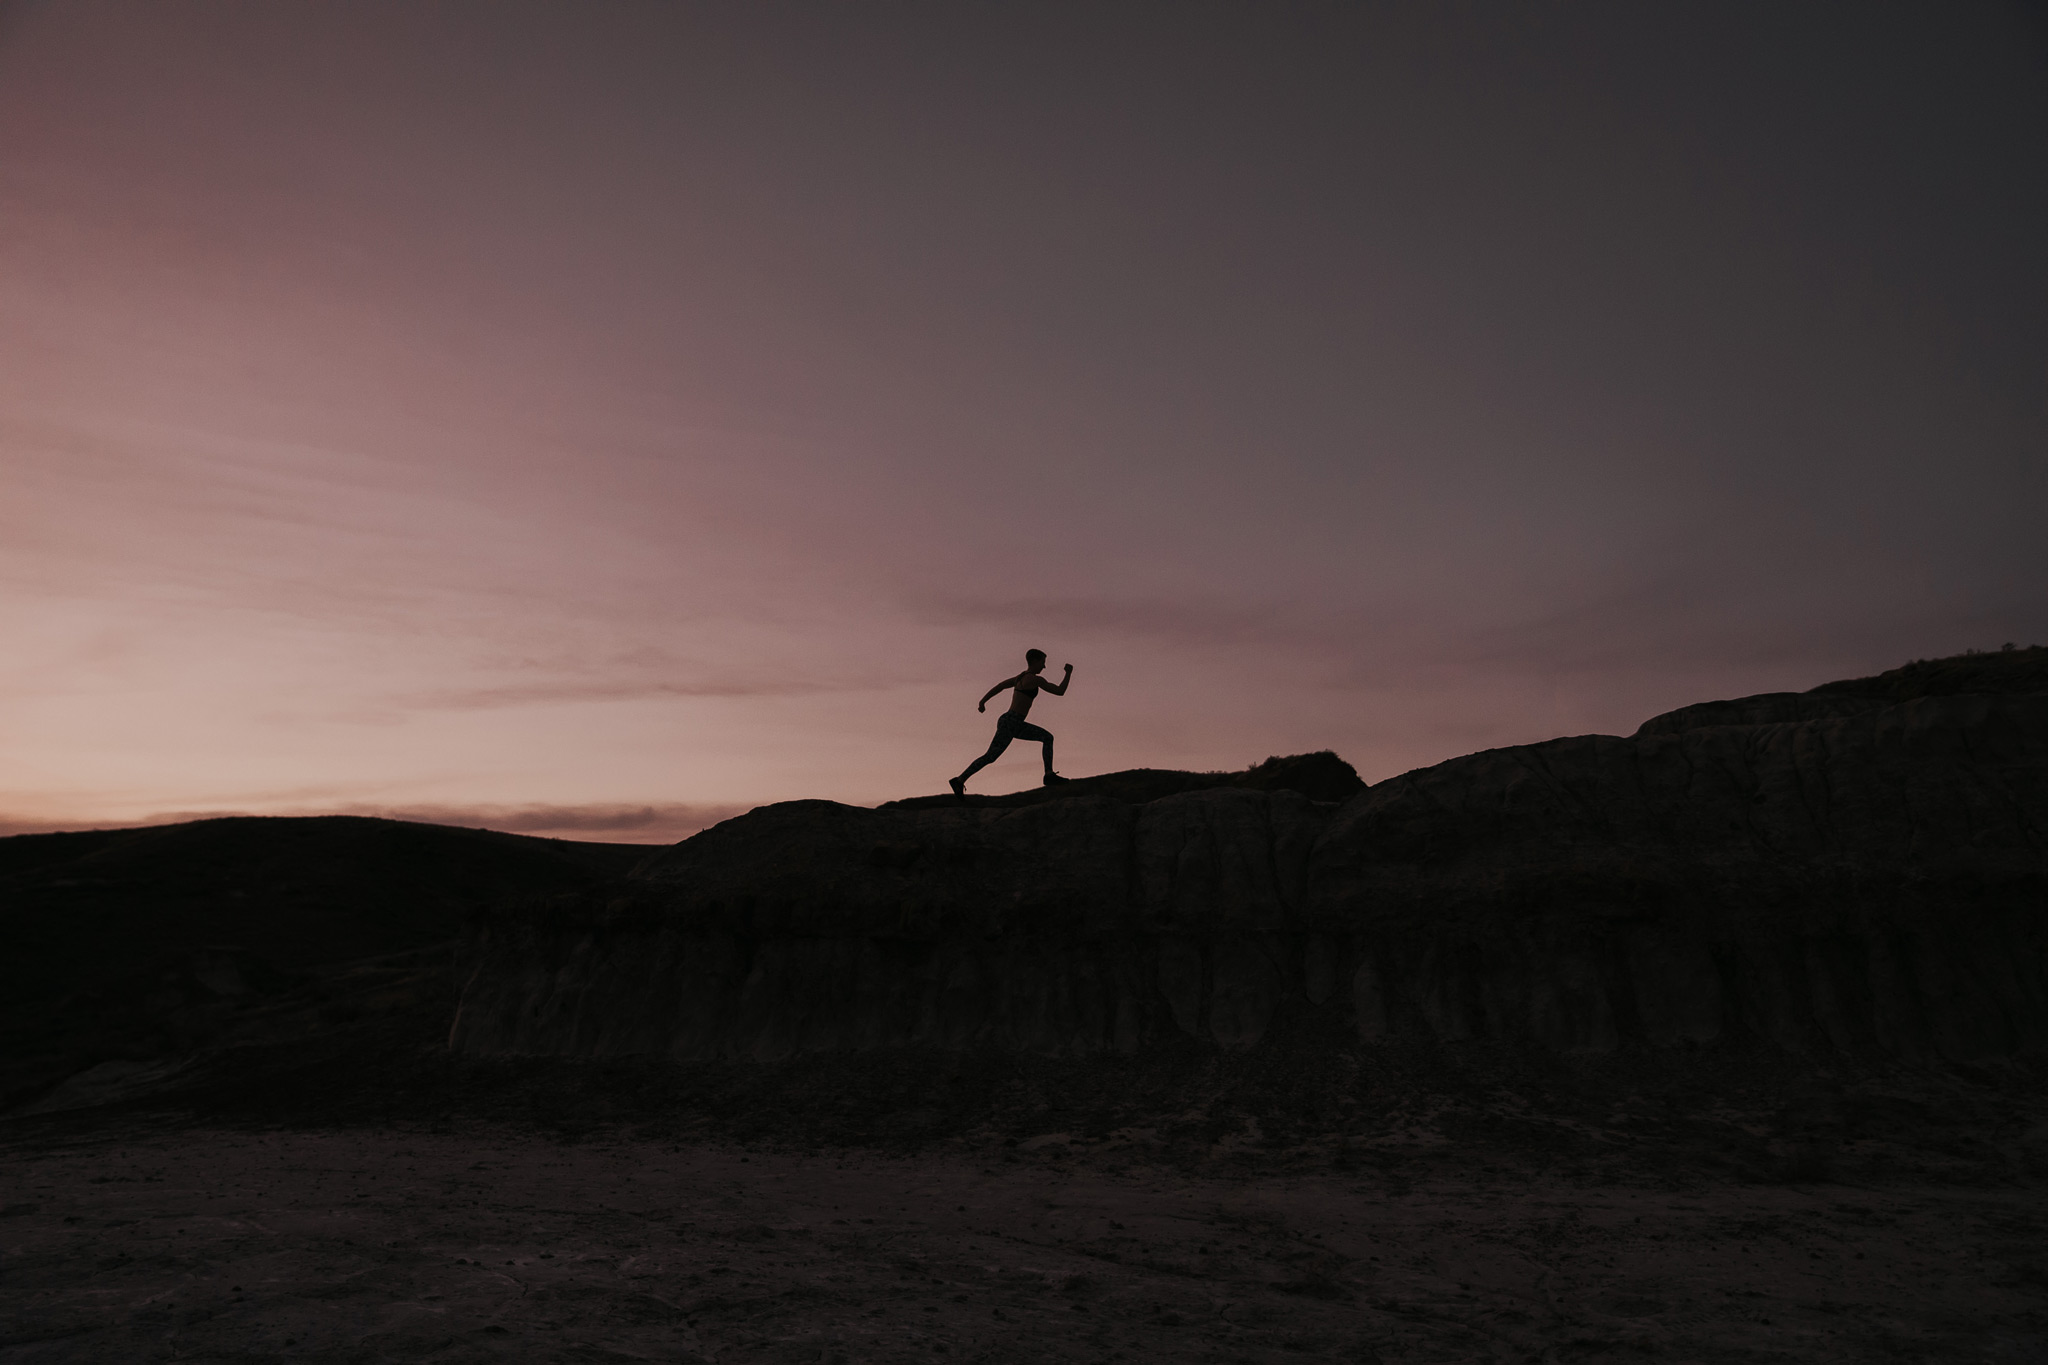 silhouette of woman running across ledge at sunset